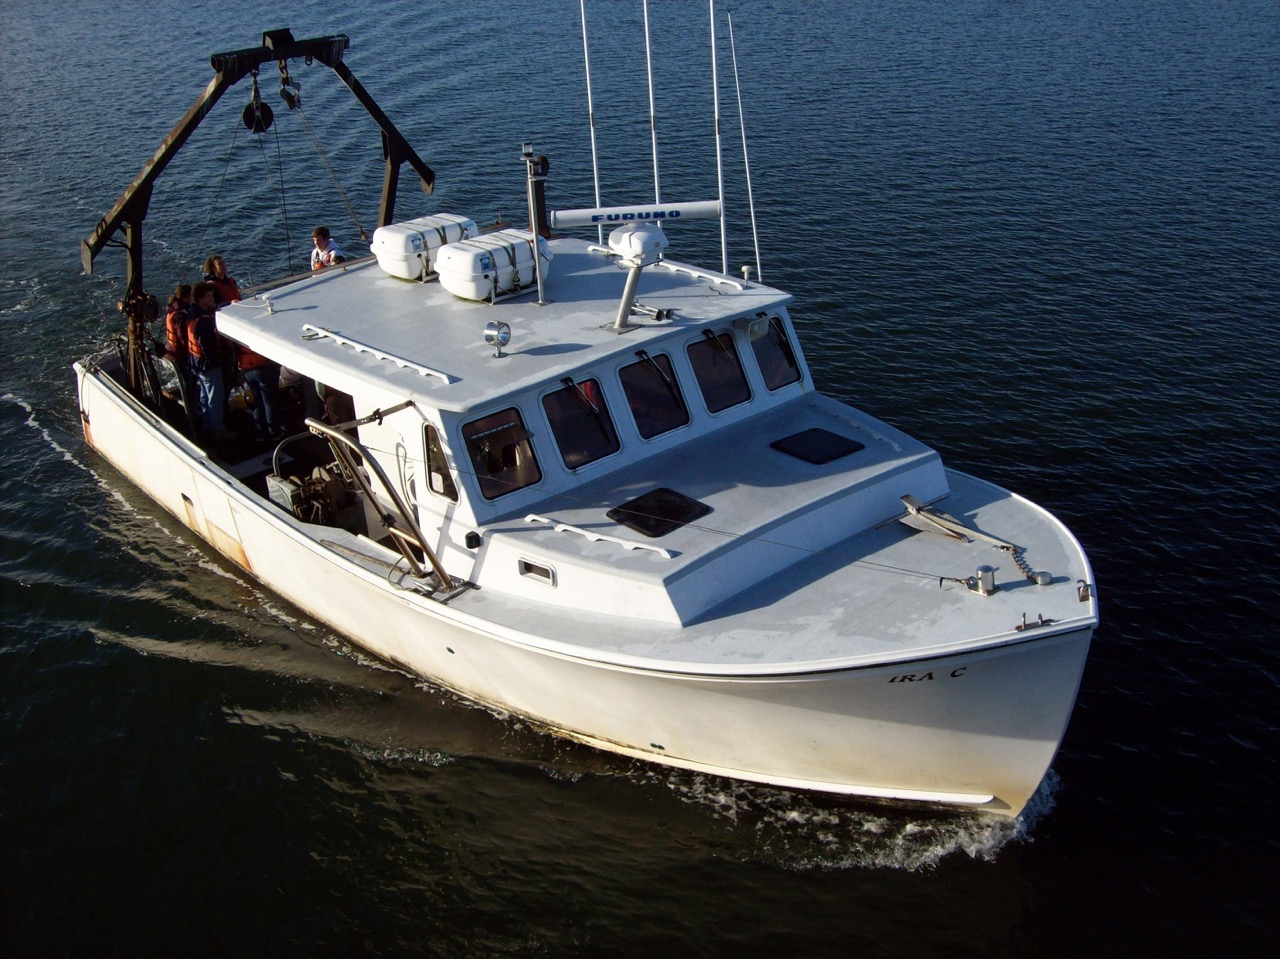 picture of the R/V Ira C.